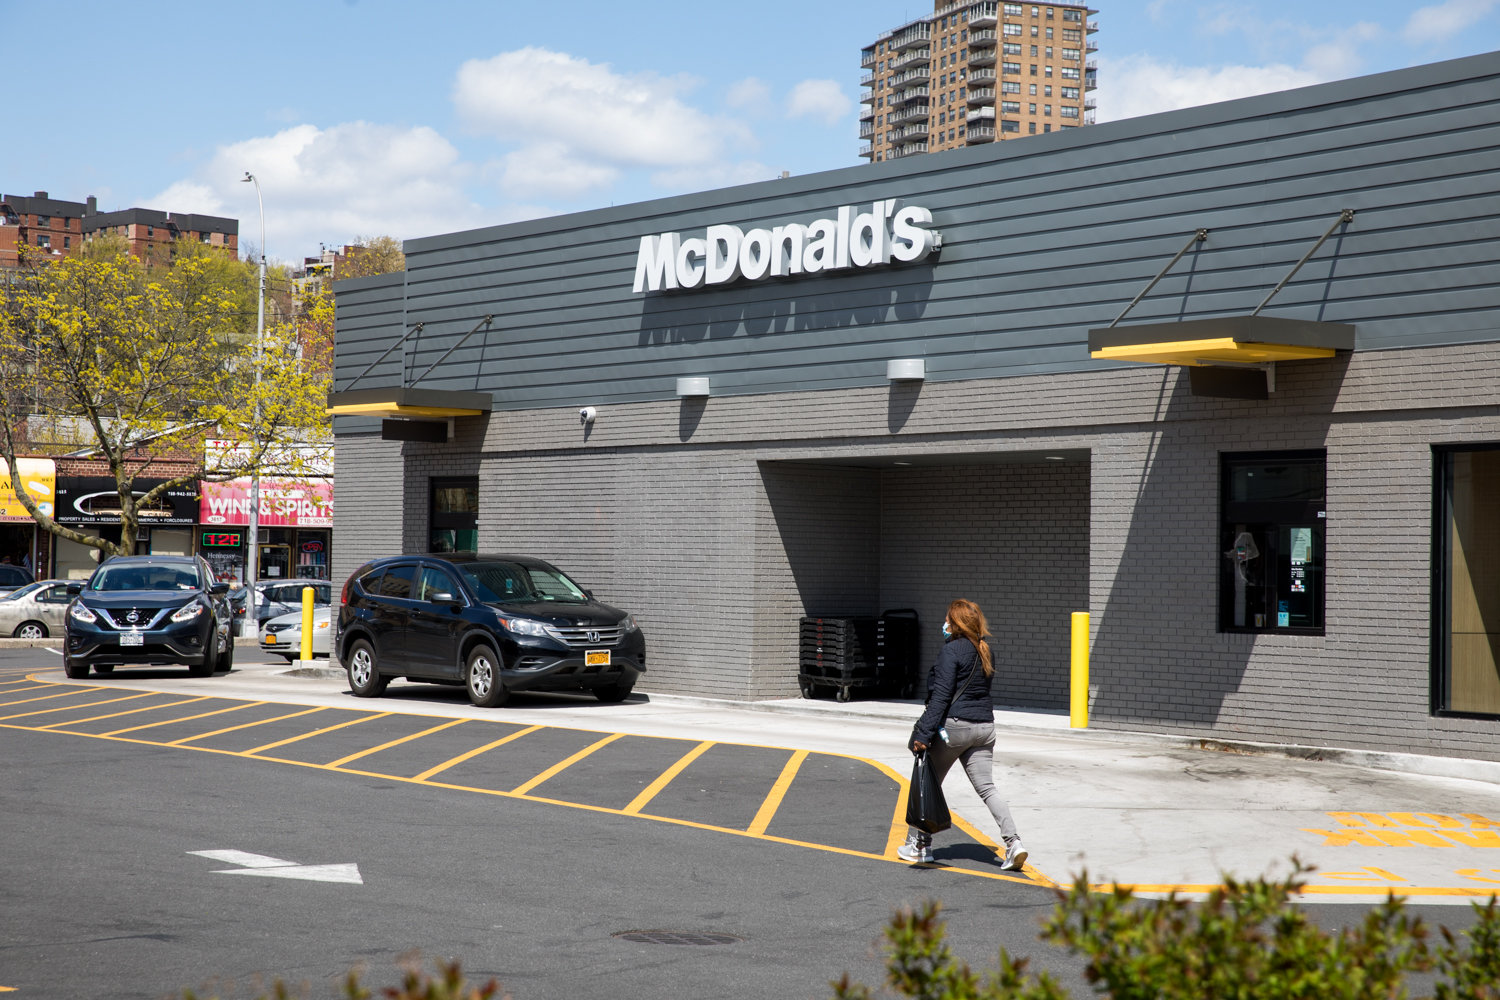 McDonald's has removed its dine-in option following the advent of the coronavirus pandemic while other restaurants have struggled to keep business up with some closing completely.